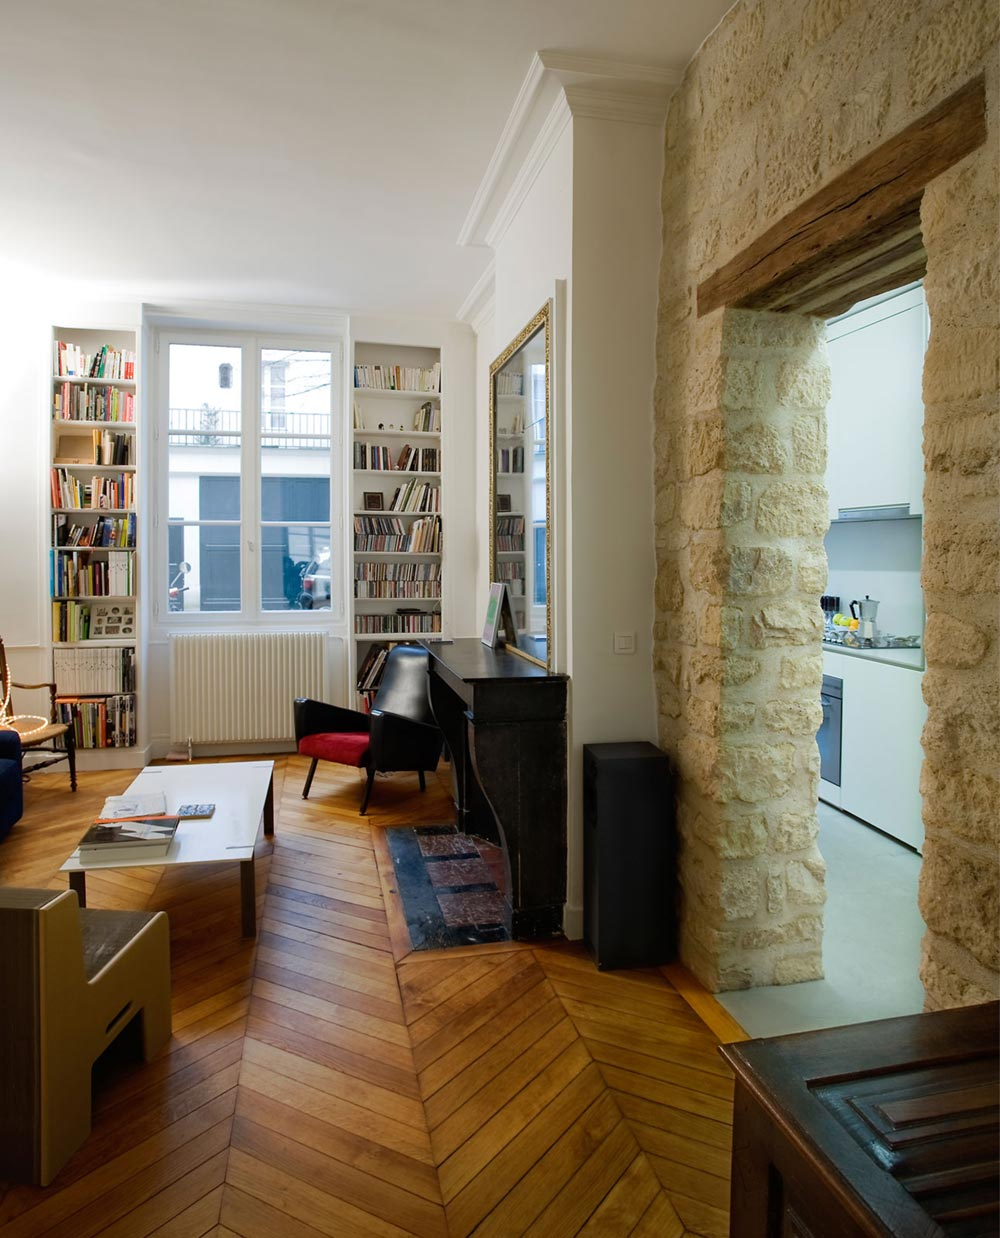 Cheapest Studio Apartments: Beautiful Studio Apartment In Paris W/ An Exposed Stone Wall